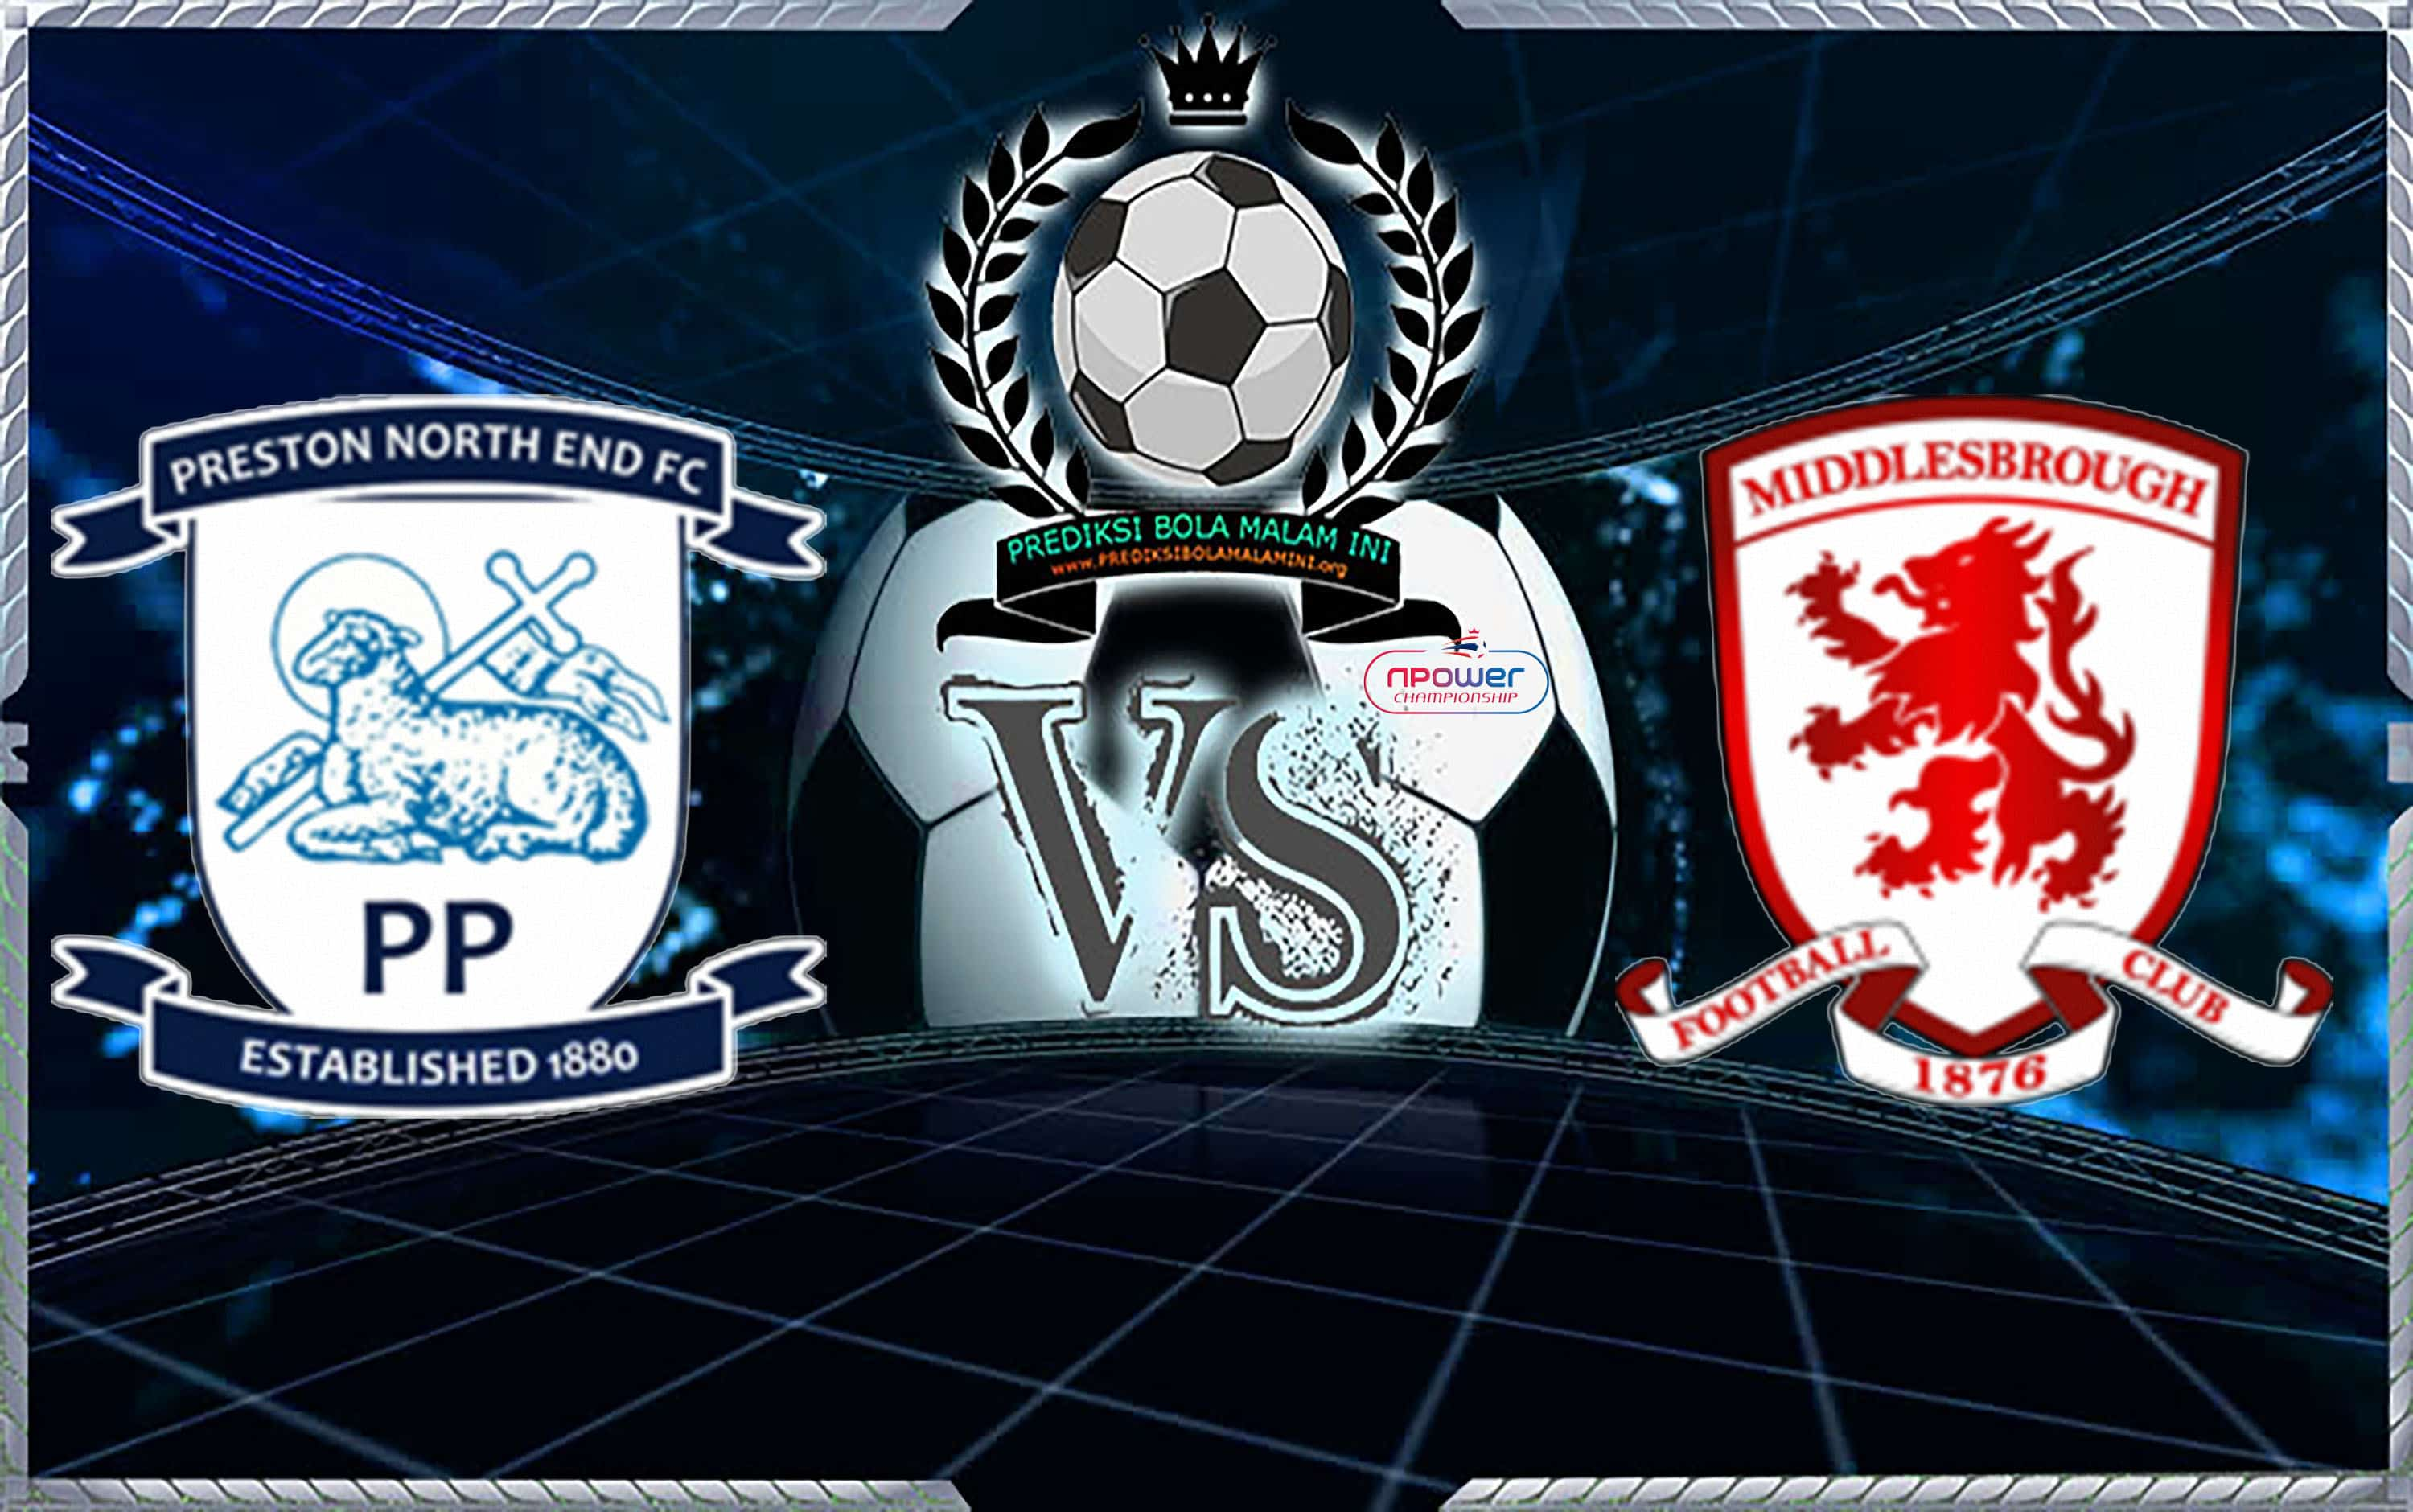 Prakiraan PRESTON NORTH END Vs MIDDLESBROUGH 28 November 2018